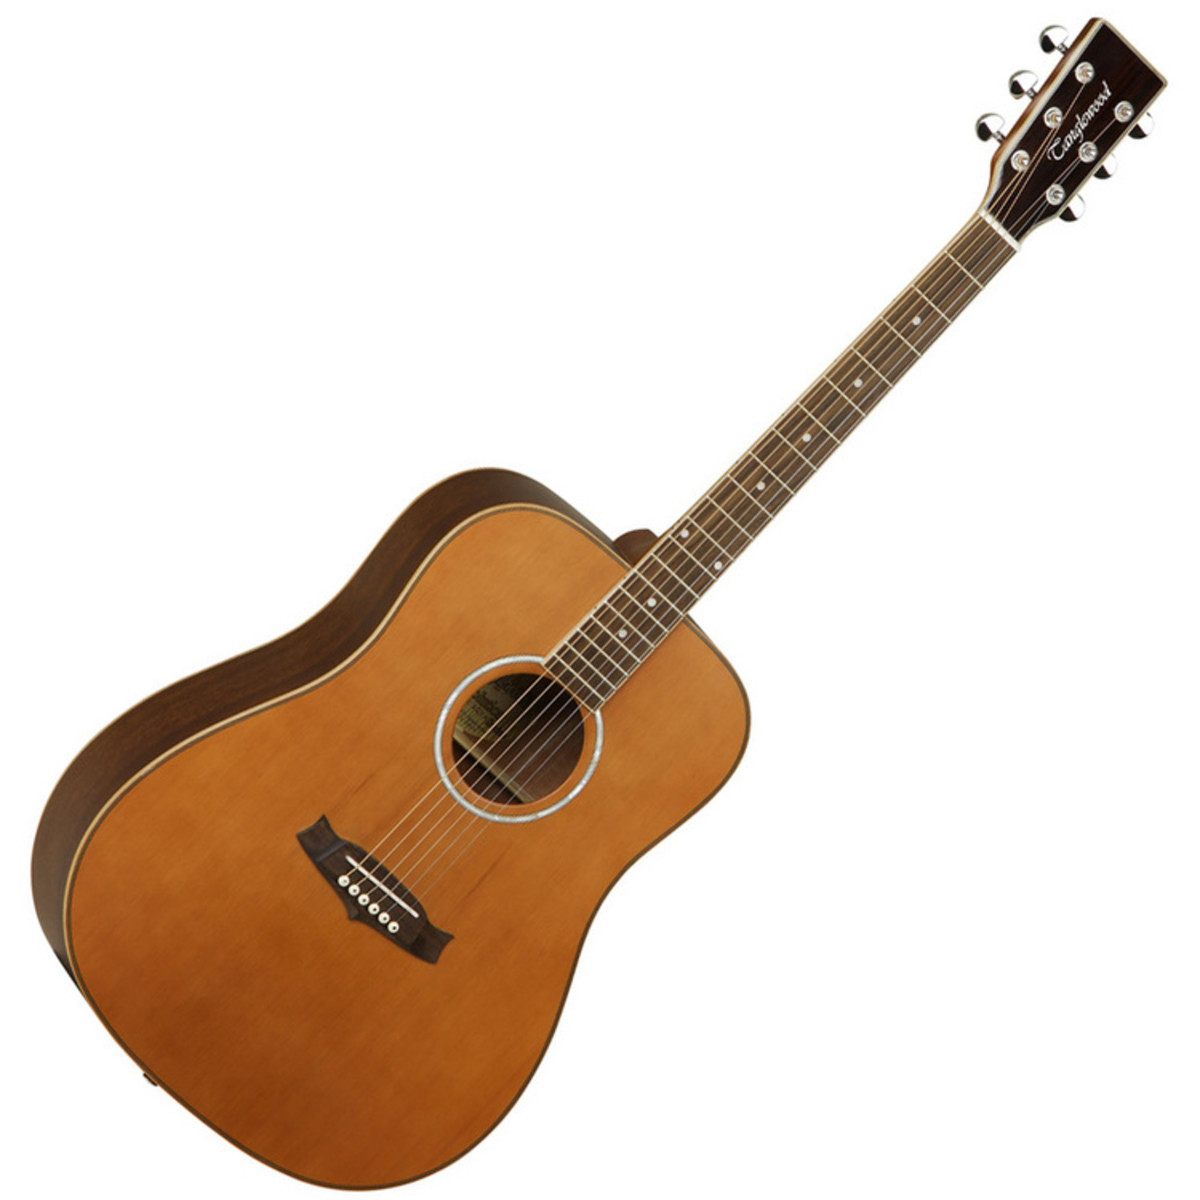 Disc tanglewood tw28 csn evolution dreadnought guitar for The tanglewood